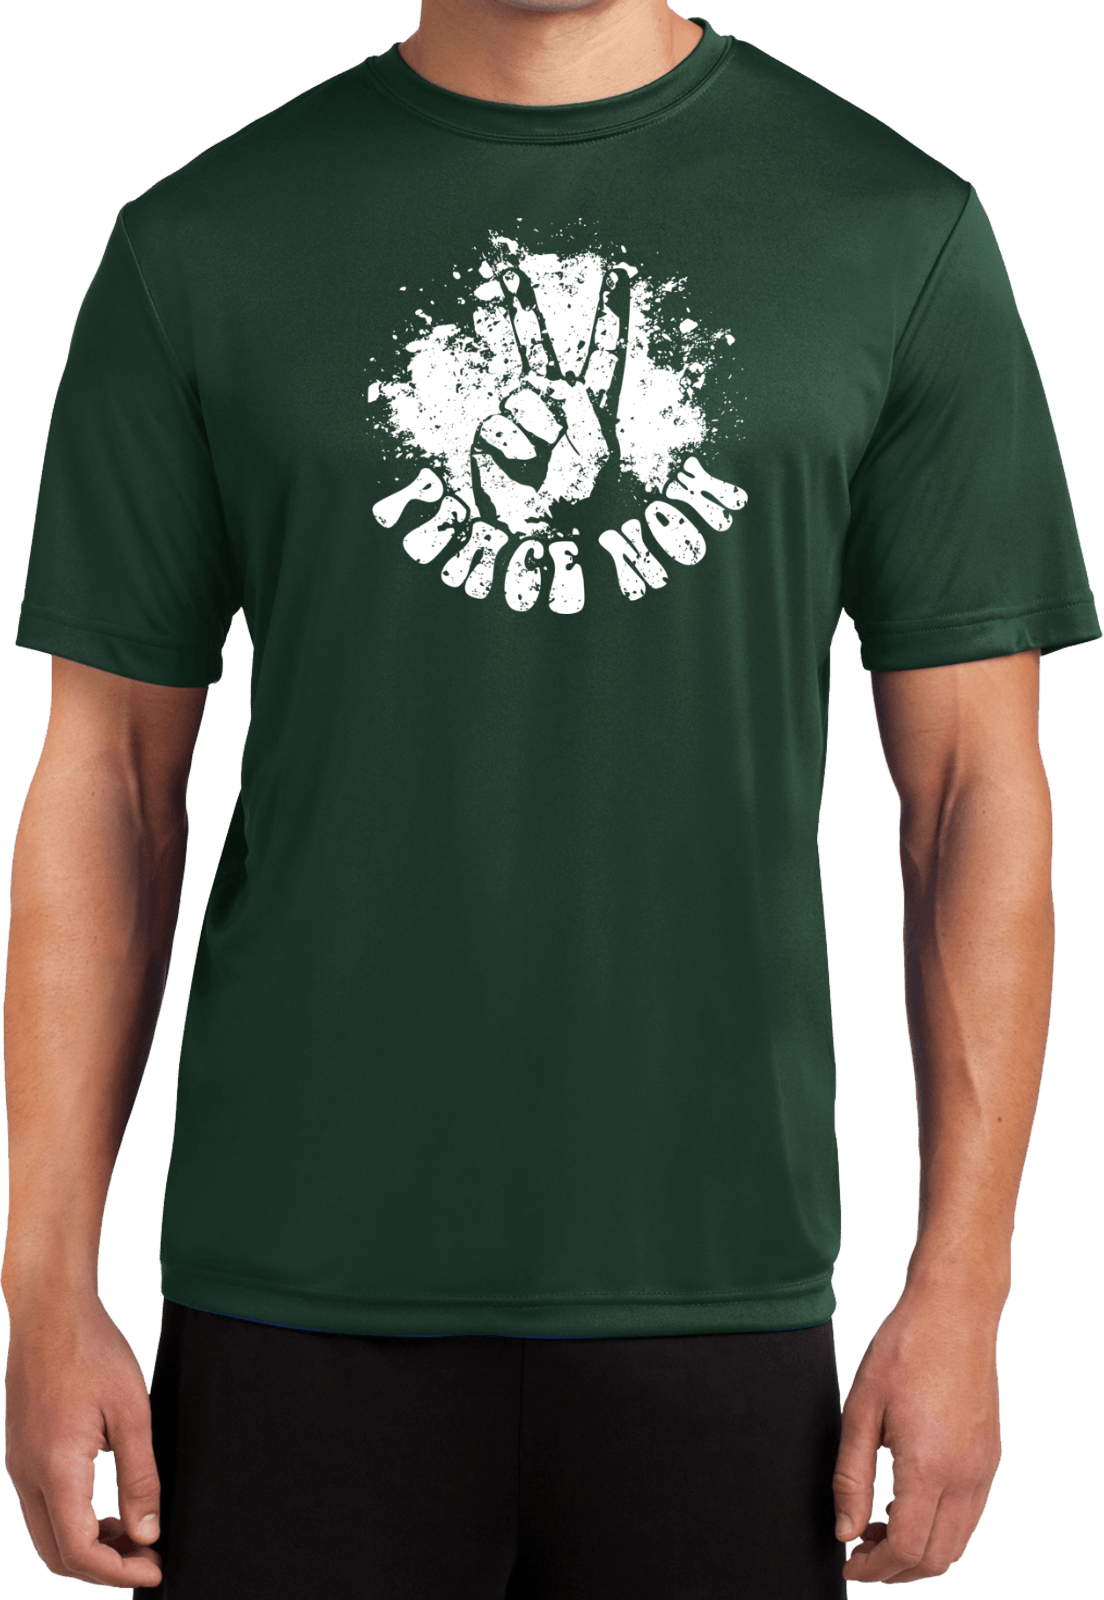 Mens peace shirt peace now moisture wicking tee t shirt for Sweat wicking t shirts